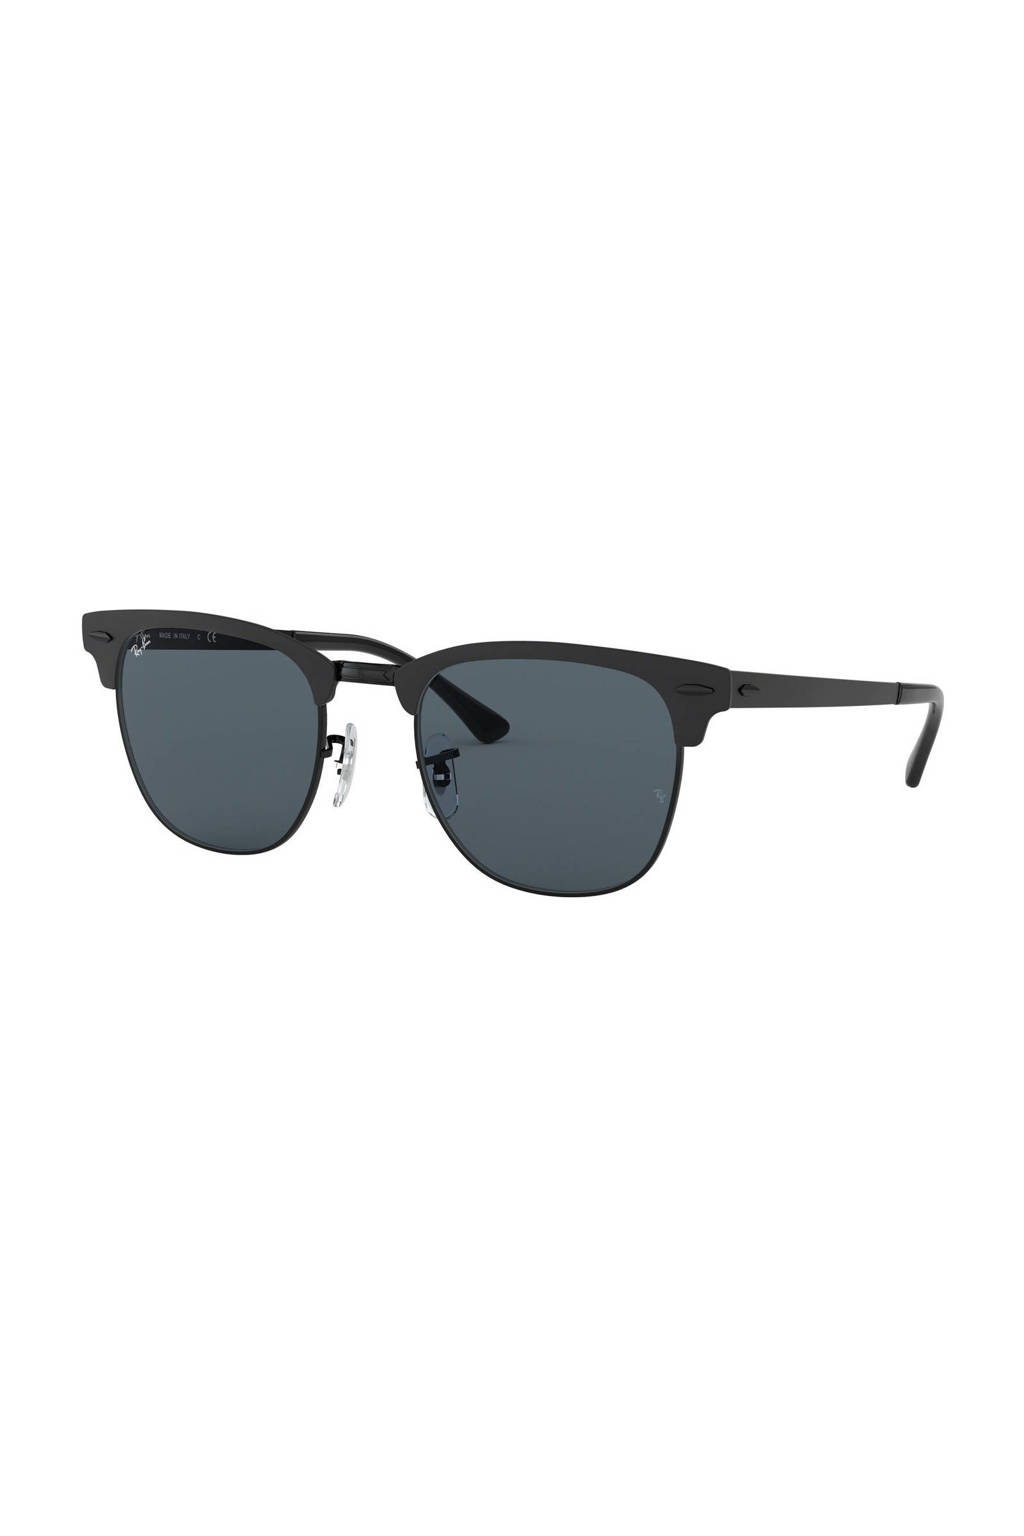 Ray-Ban zonnebril 0RB3716, Blauw